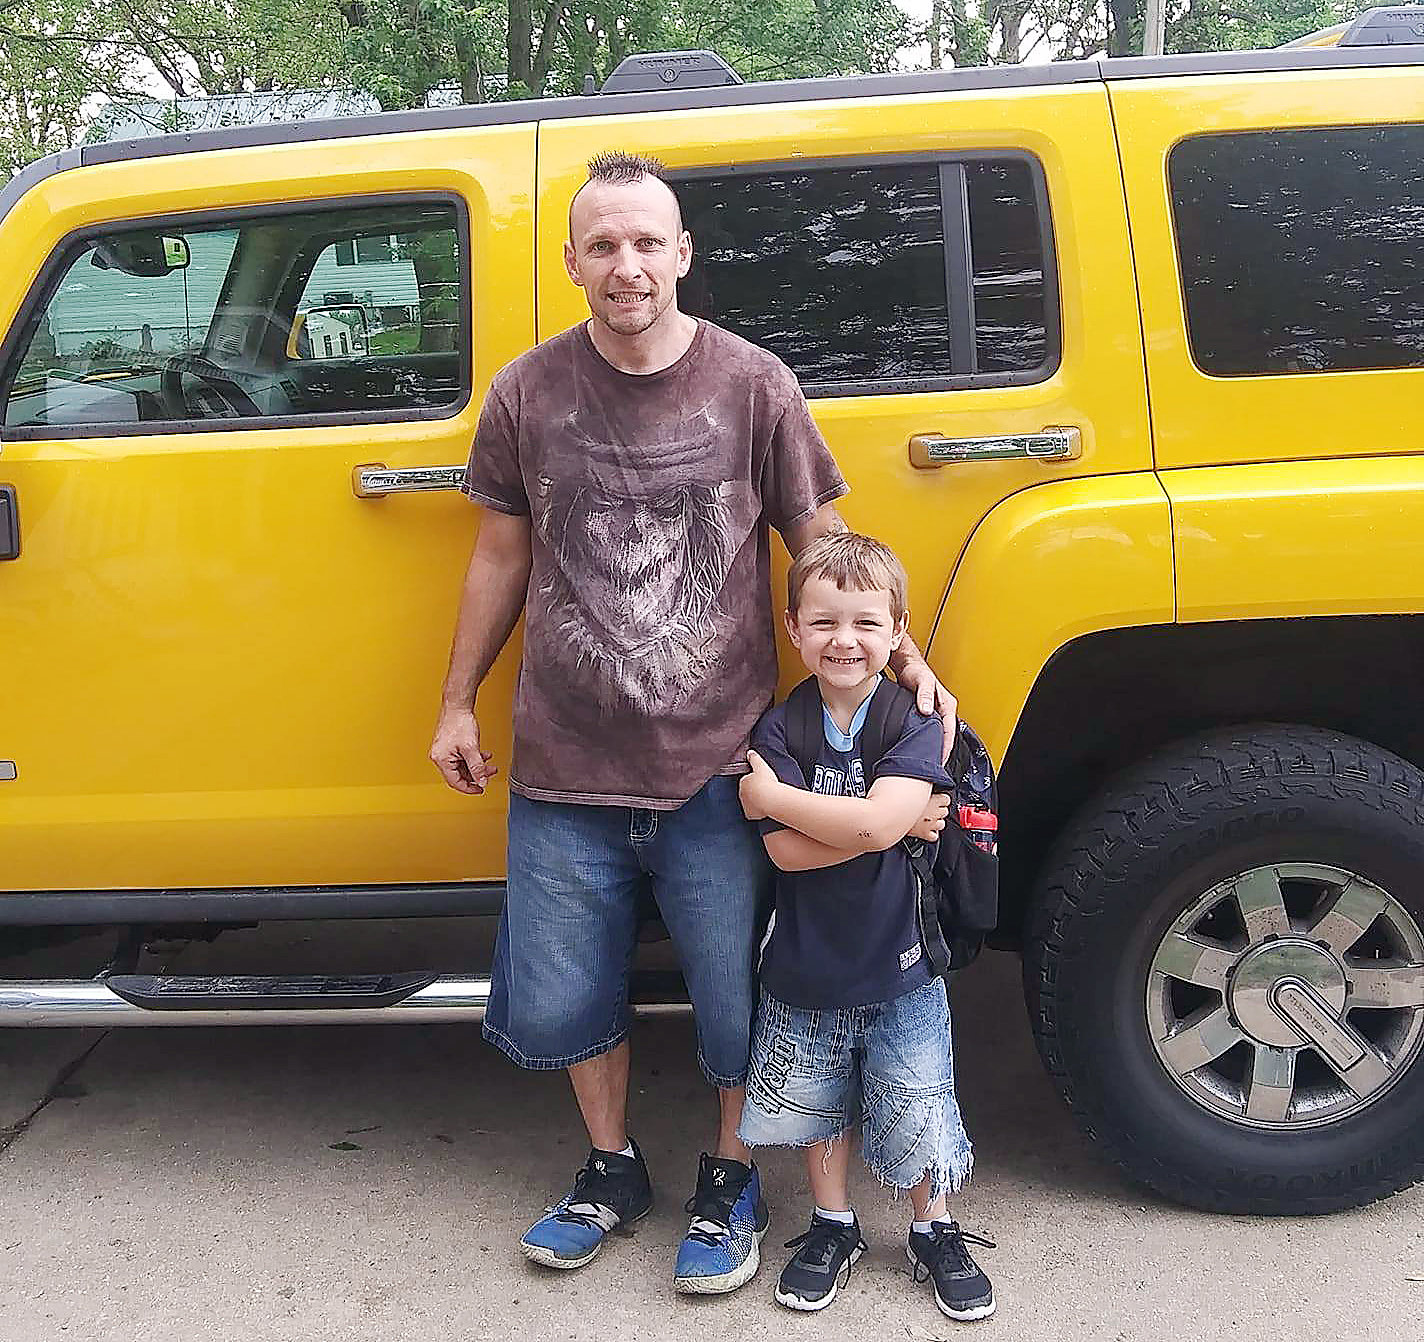 Jason Barton and Bentlee Turner in an recent photograph from Brenda Turner's Facebook page beside Barton's Humvee.